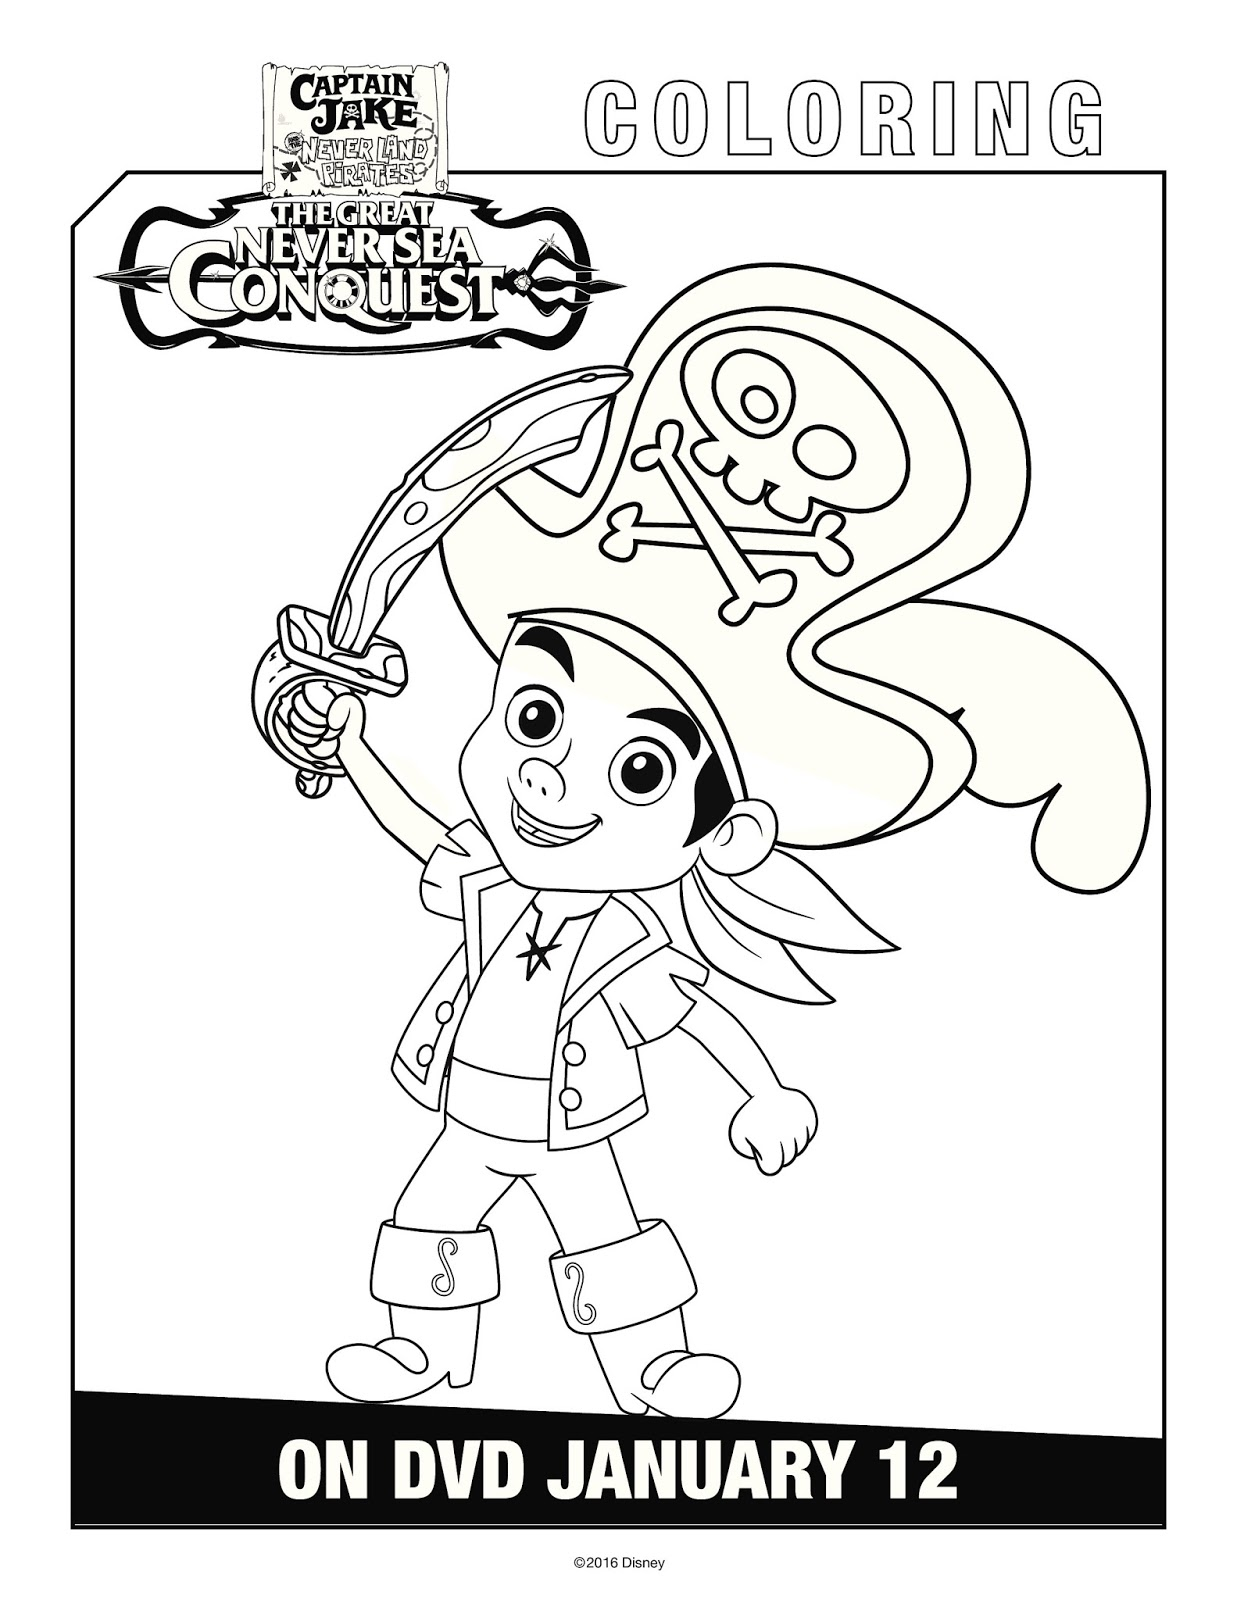 Arrgghh You Ready For Captain Jake And The Never Land